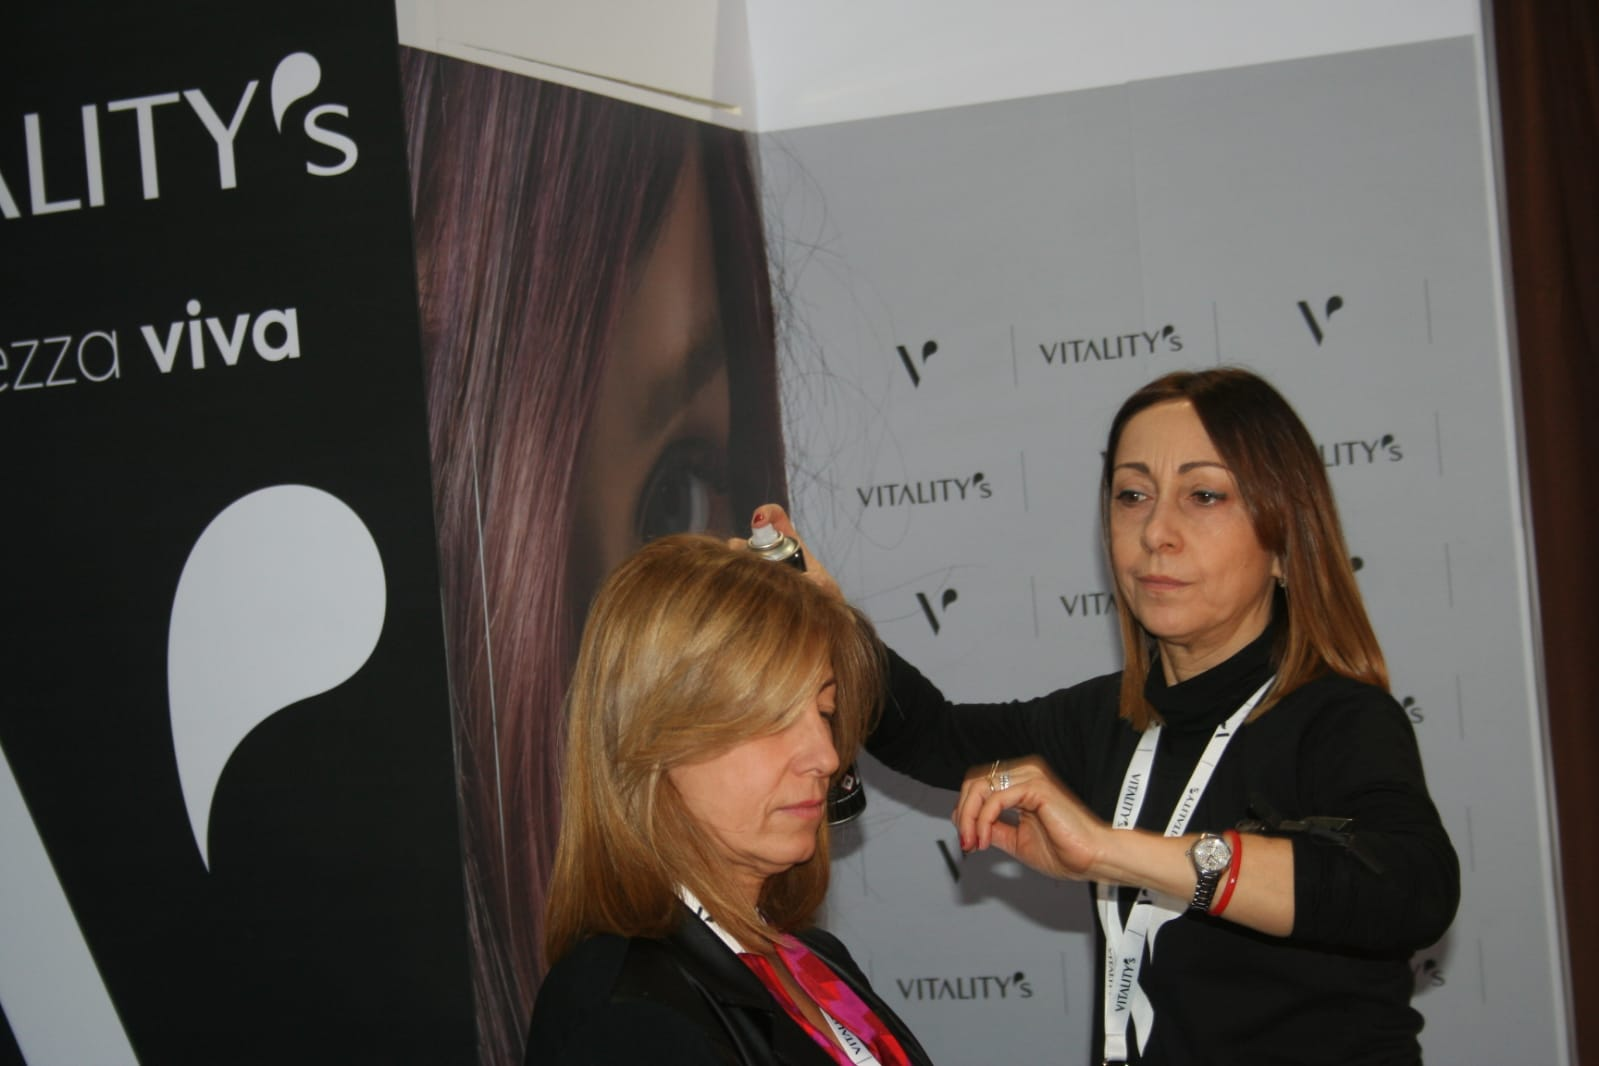 Andrea Rilli e Roberta Mercanti, di Idea Due Hair Styling (7)